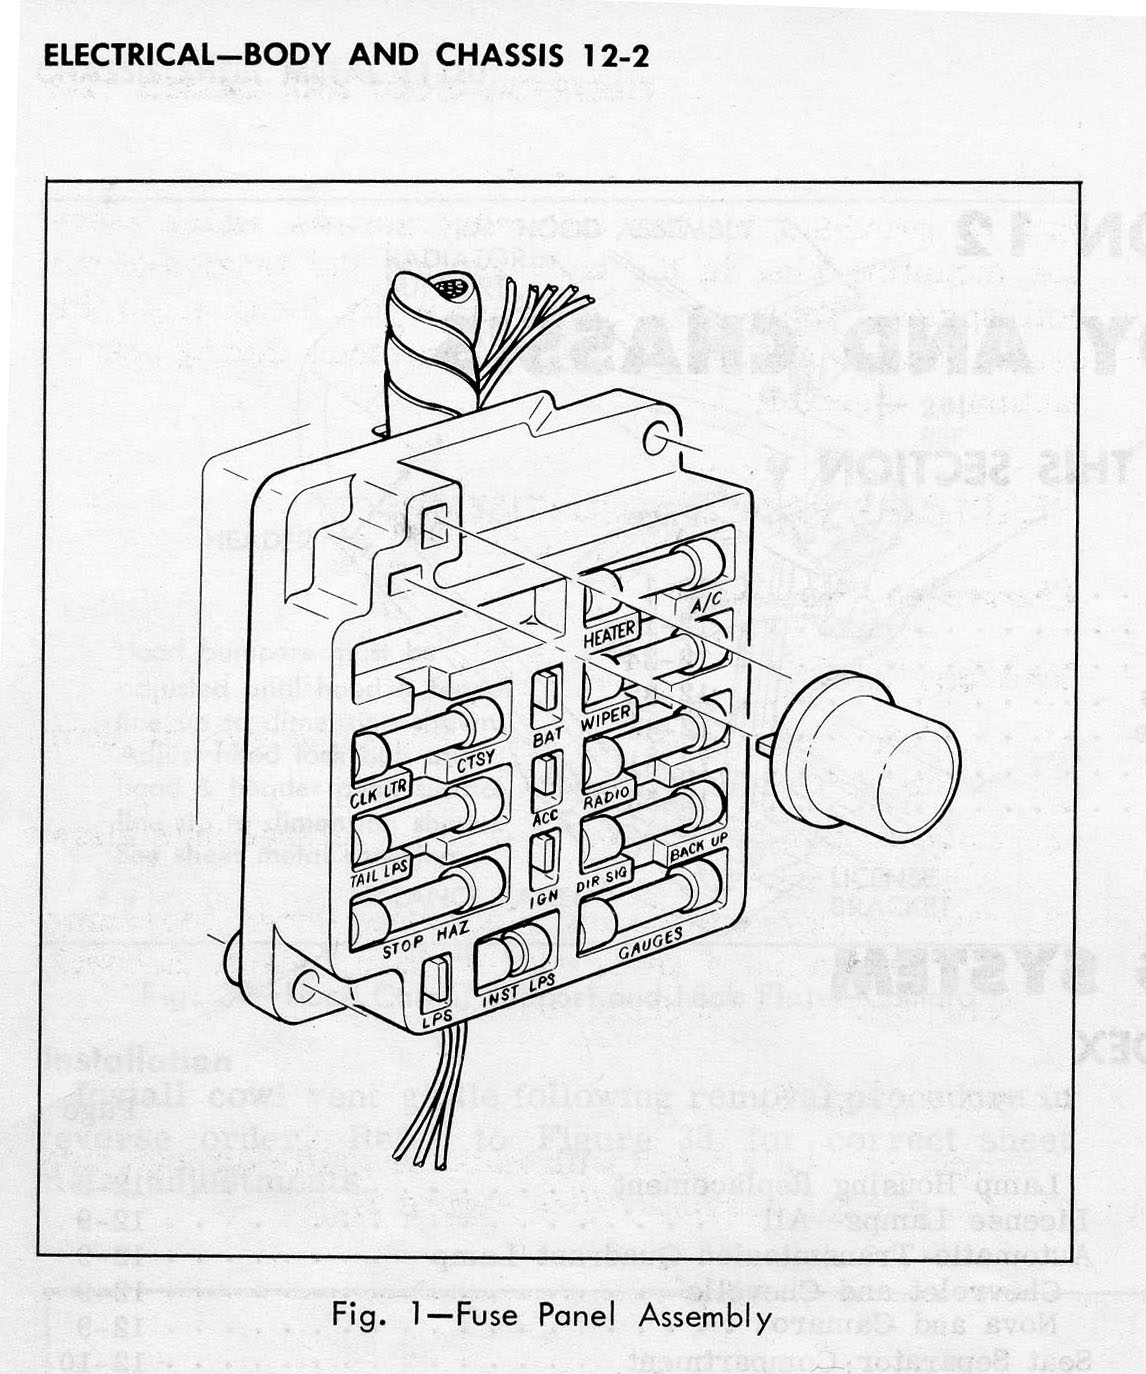 1969 Mustang Fuse Box Diagram Wiring Diagrams 1971 Panel 1965 Ford 1968